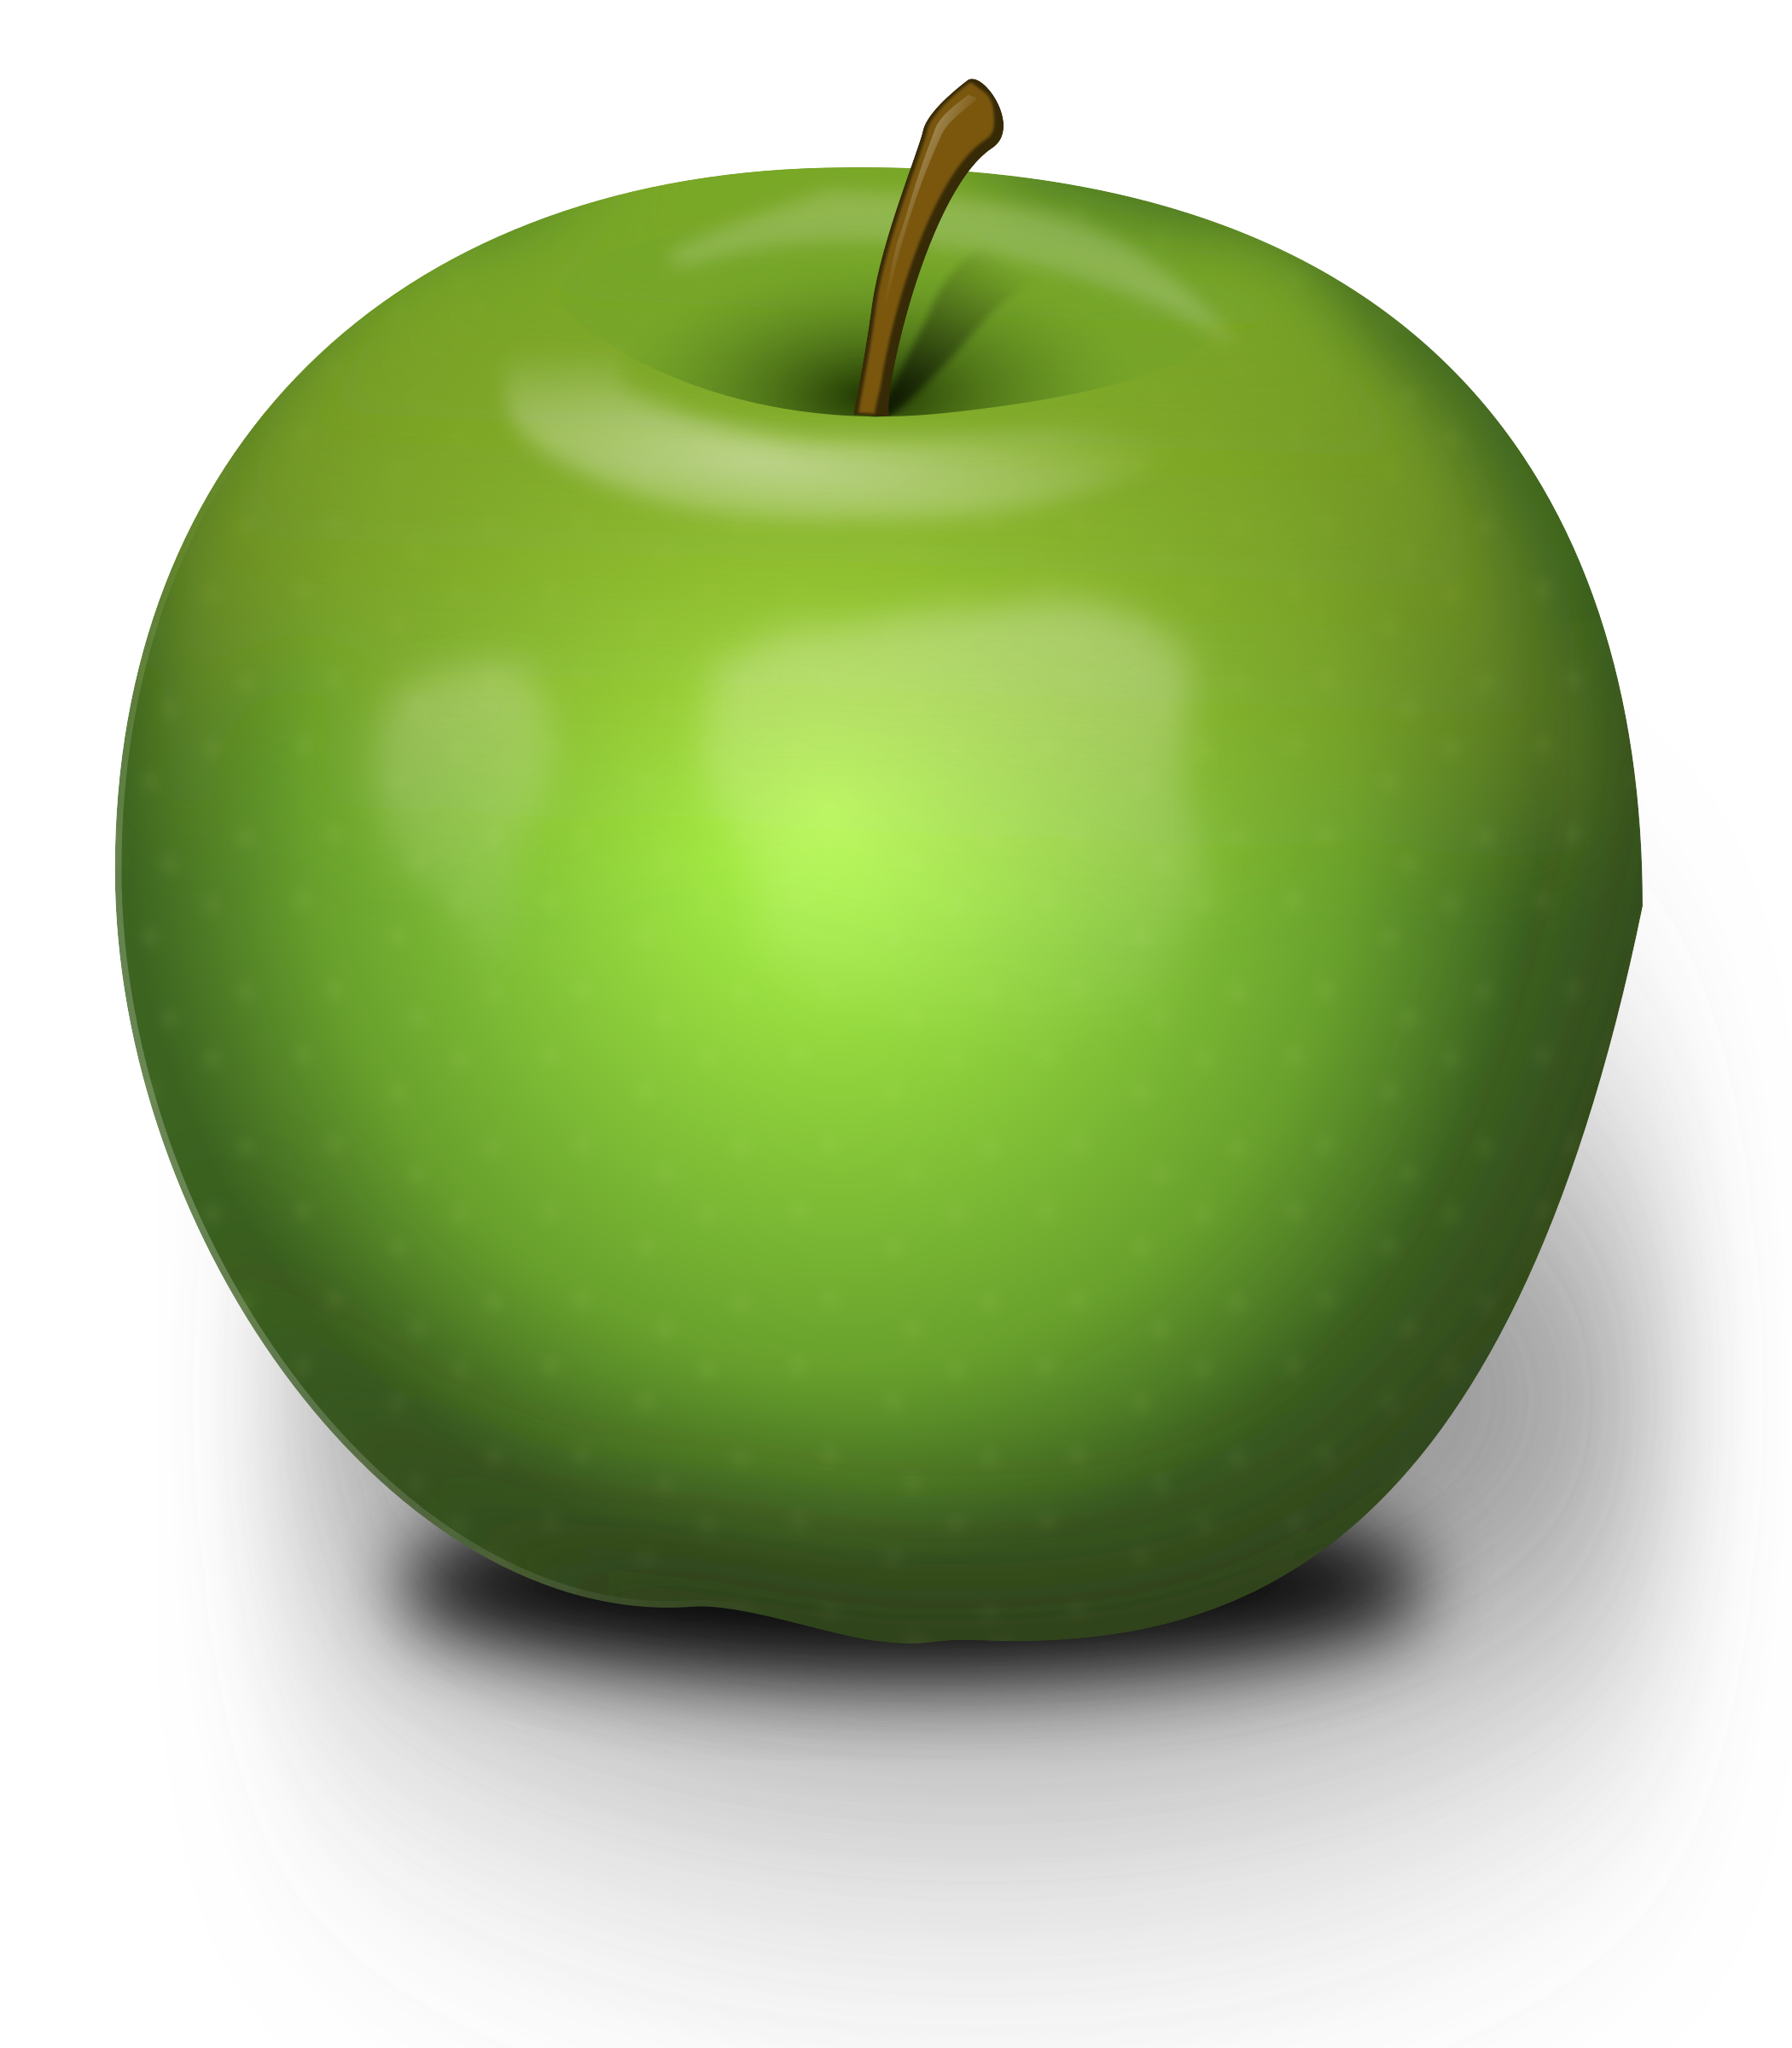 Photorealistic Green Apple by Chrisdesign